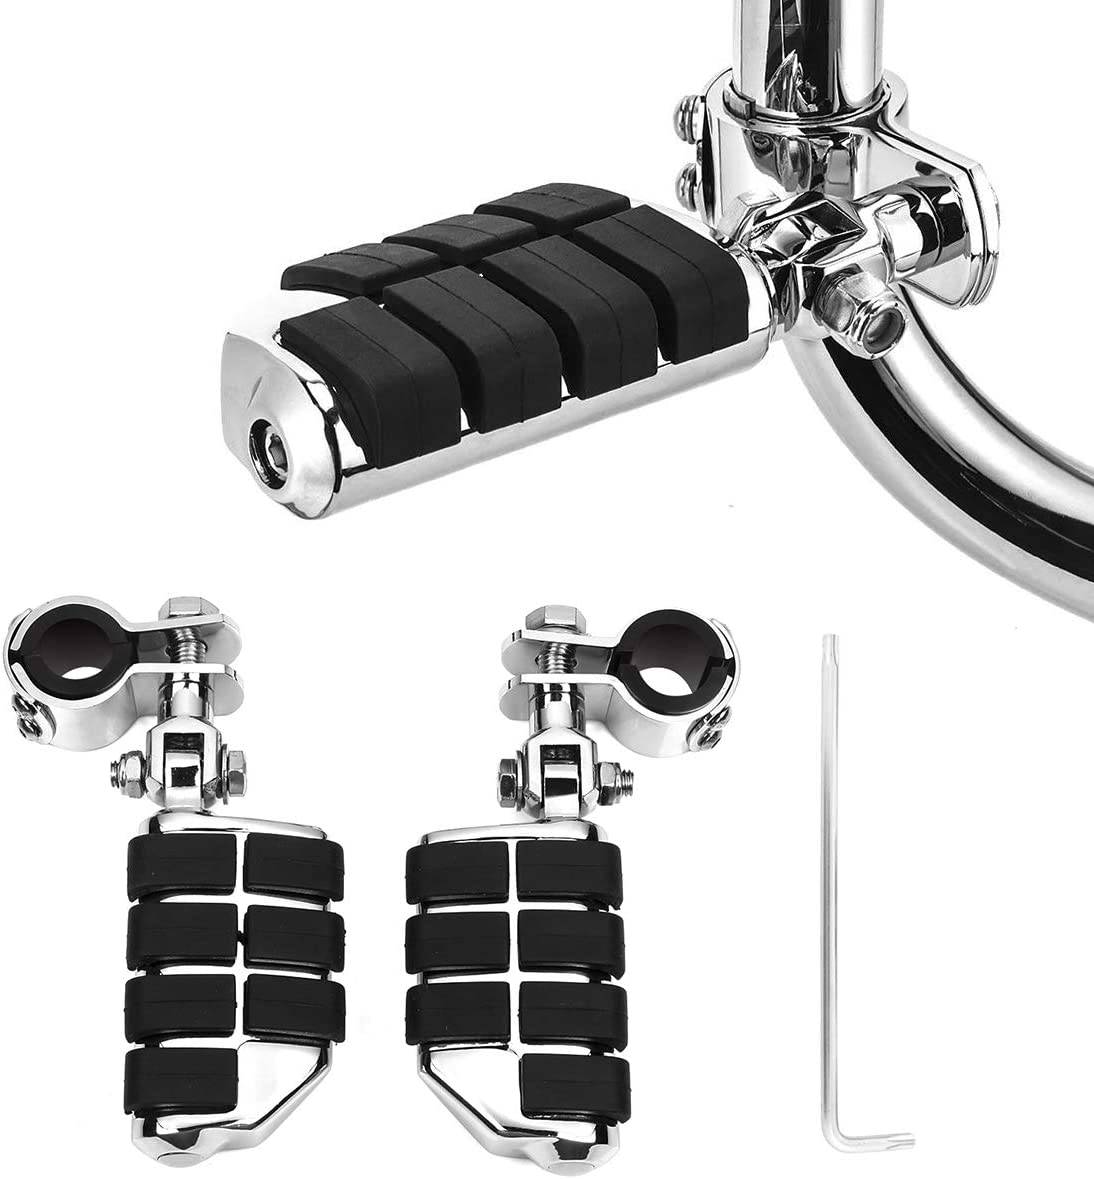 KING SHOWDEN All items free shipping Motorcycle Long-awaited Foot Pegs Com Rest Highway Footpegs